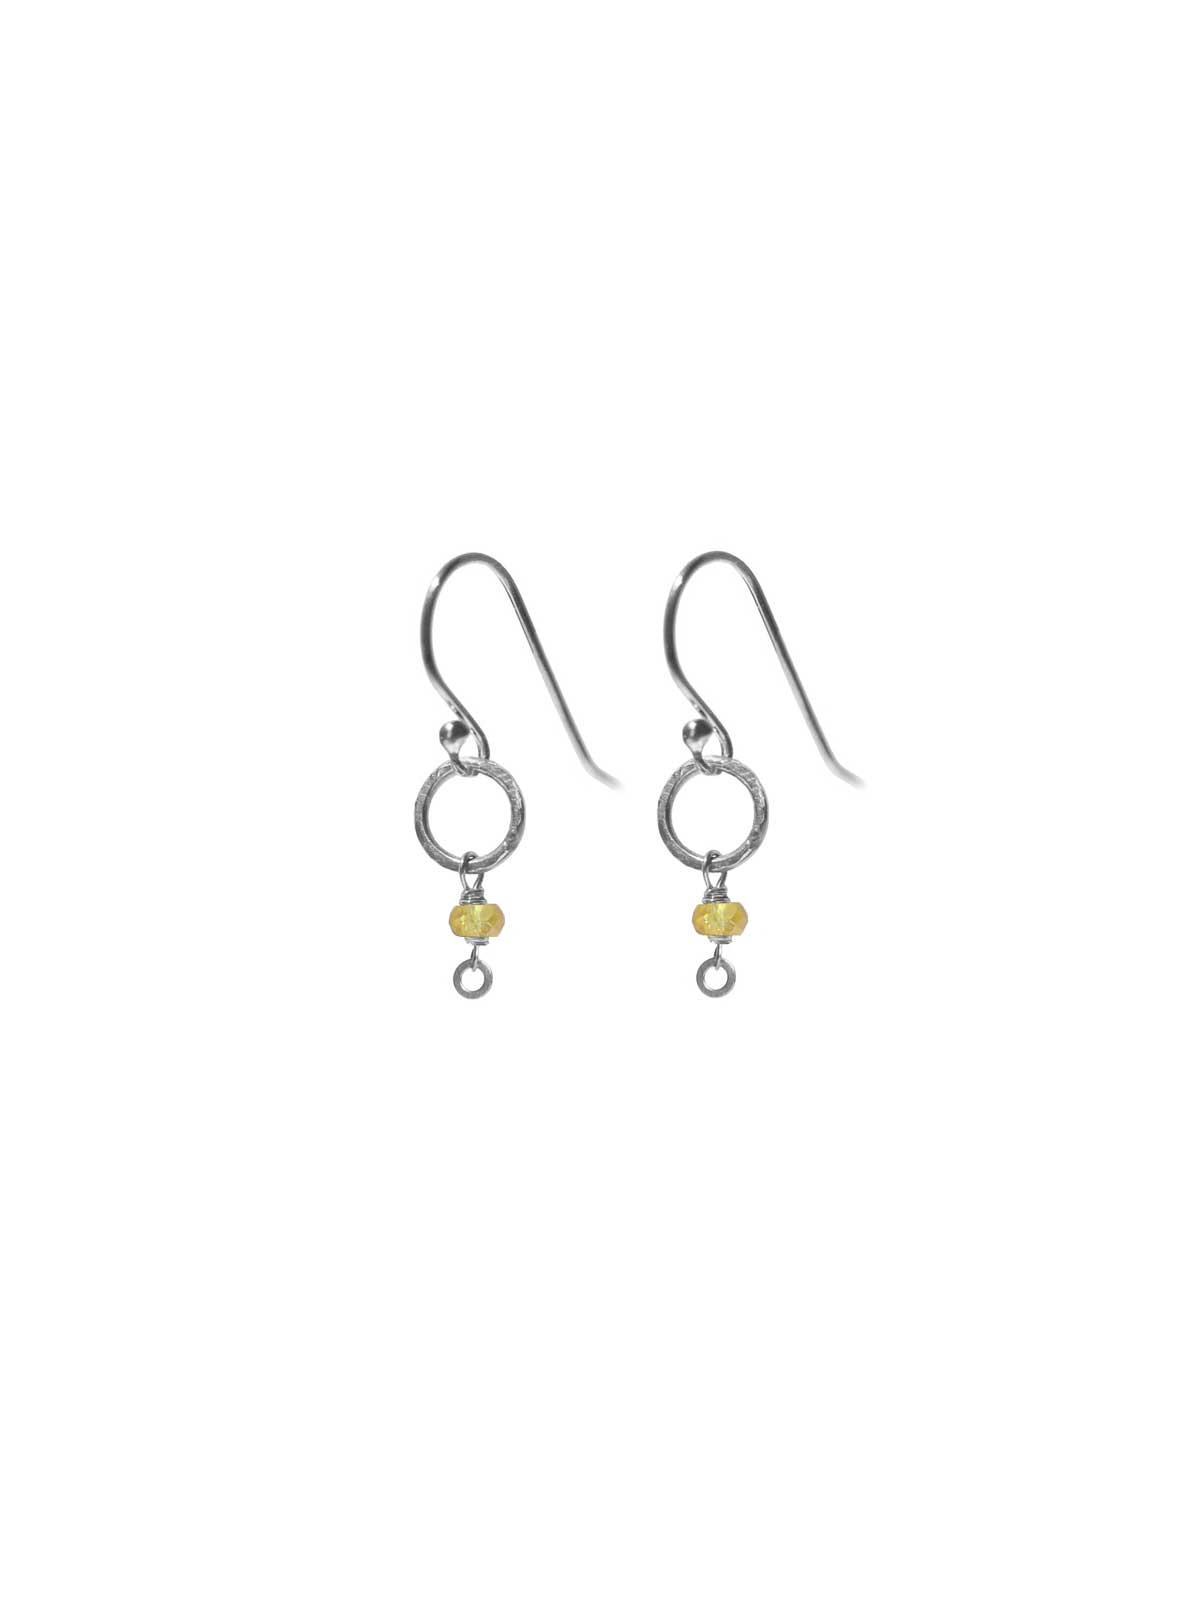 Earrings Sterling Silver and Yellow Orange Sapphire